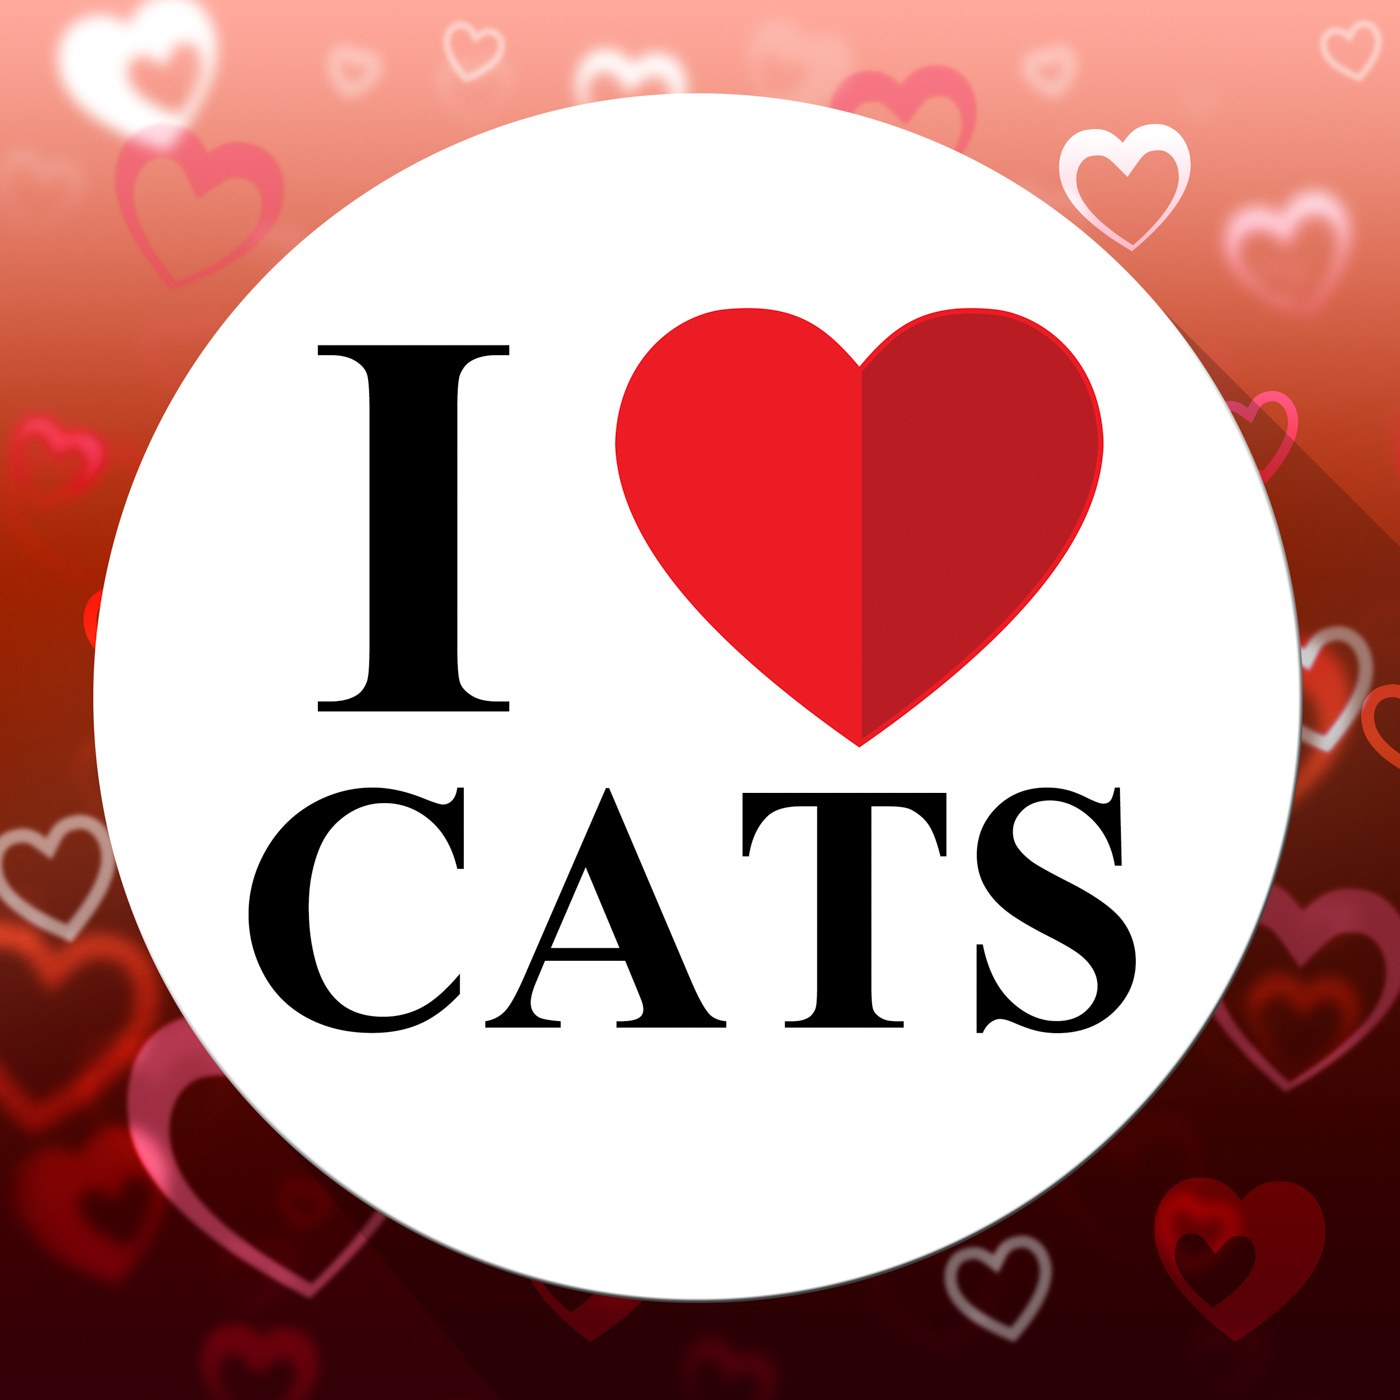 Love Cats Indicates Domestic Fabulous And Like Cat, Agreeable, Love, Terrific, Superb, HQ Photo